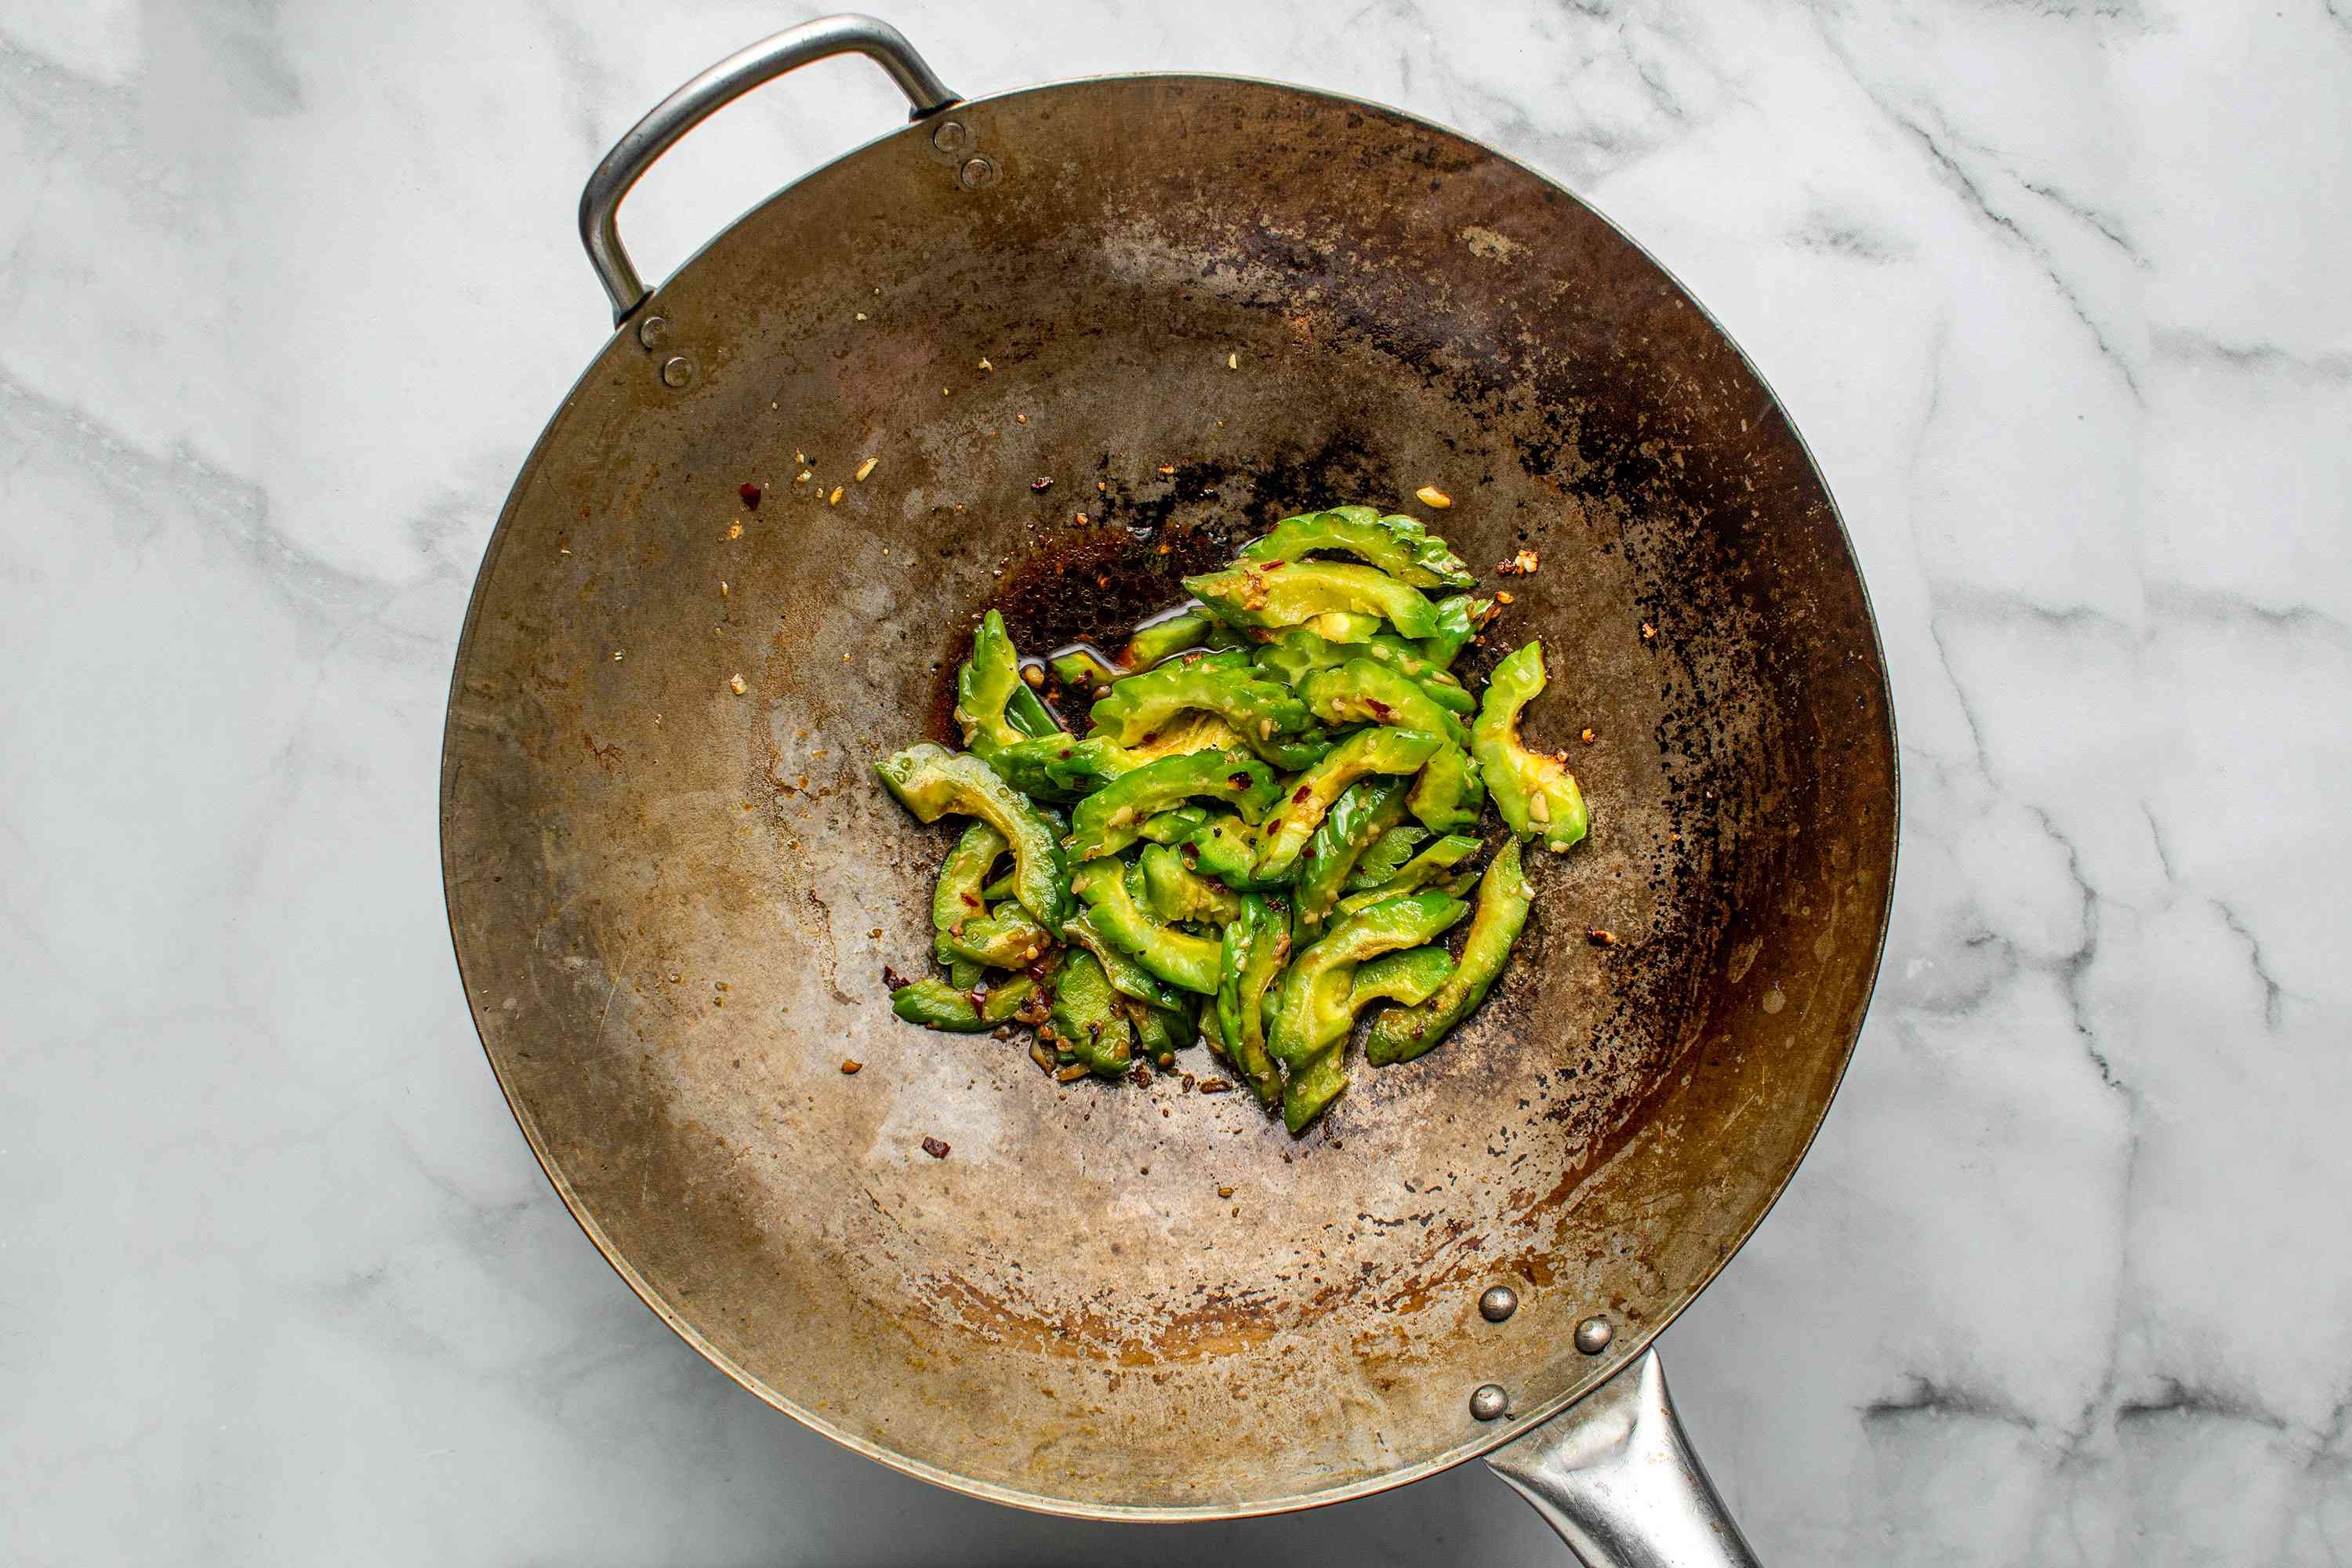 bitter melon cooking in a wok